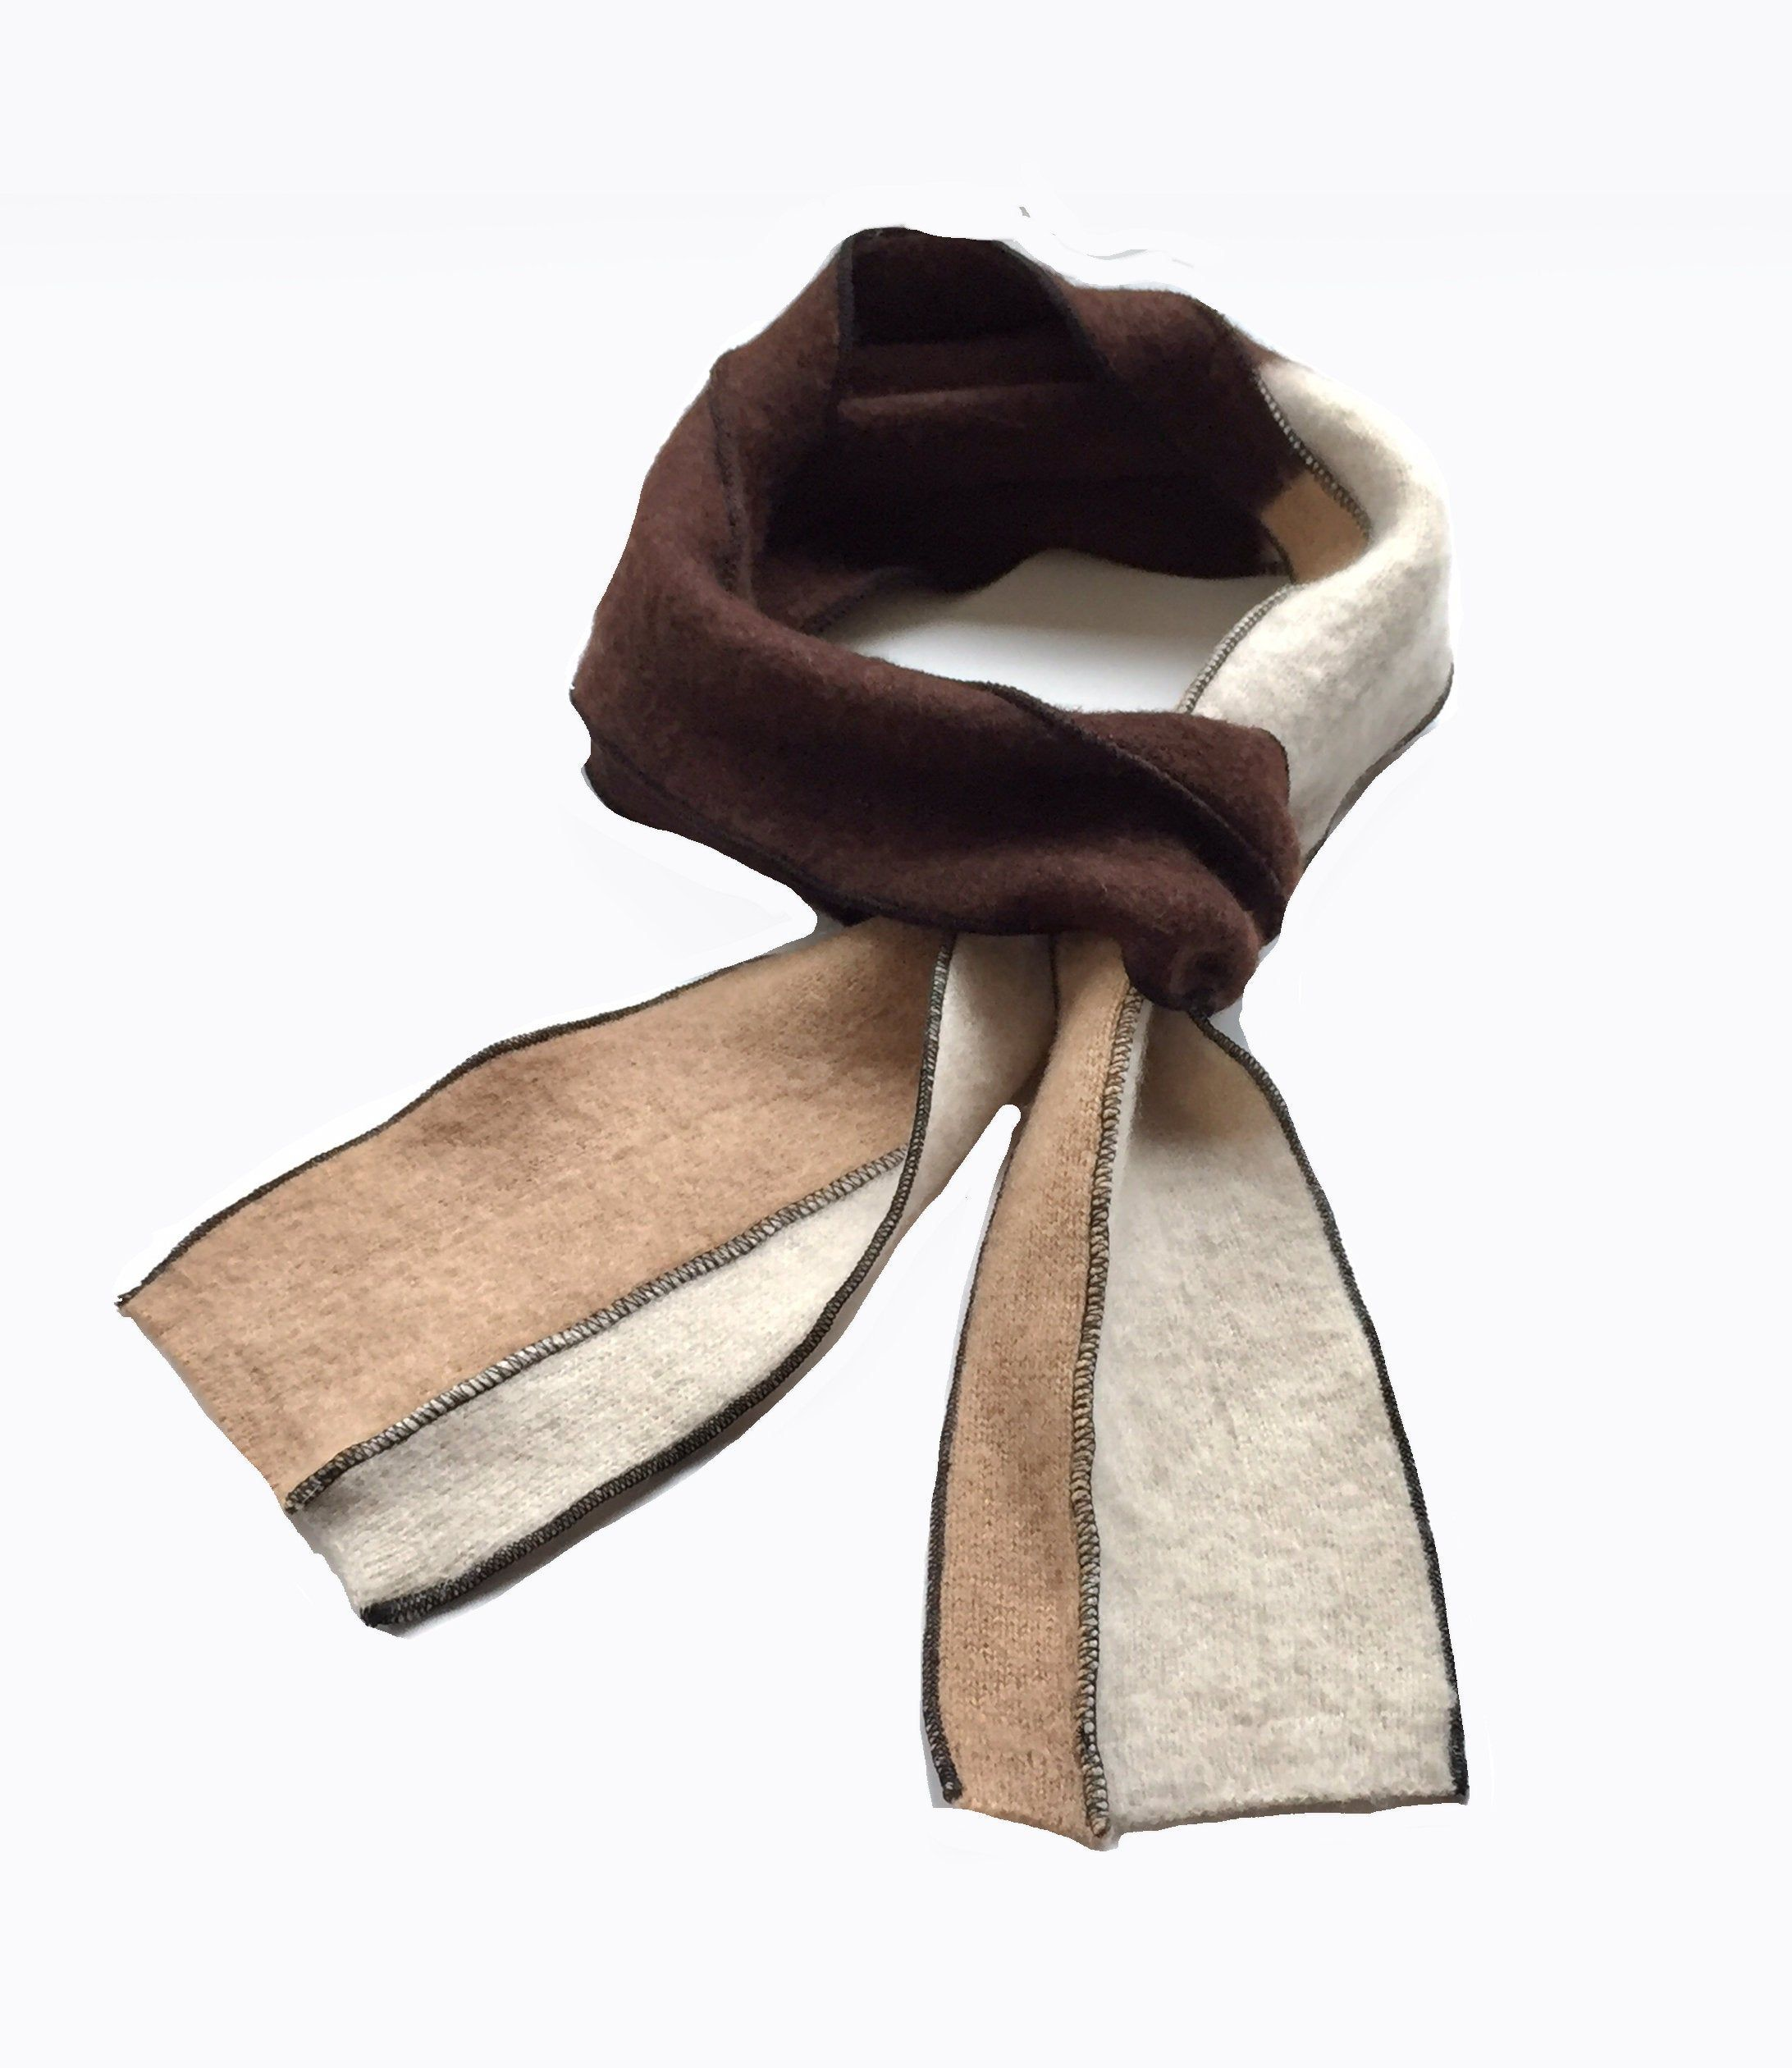 Photo of Cashmere Scarf, Loro Piana Cashmere, Knitted Scarf, Neutral Coloured,Camel, Chocolate , knitted cashmere,Gift for Girlfriend,Boyfriend Scarf